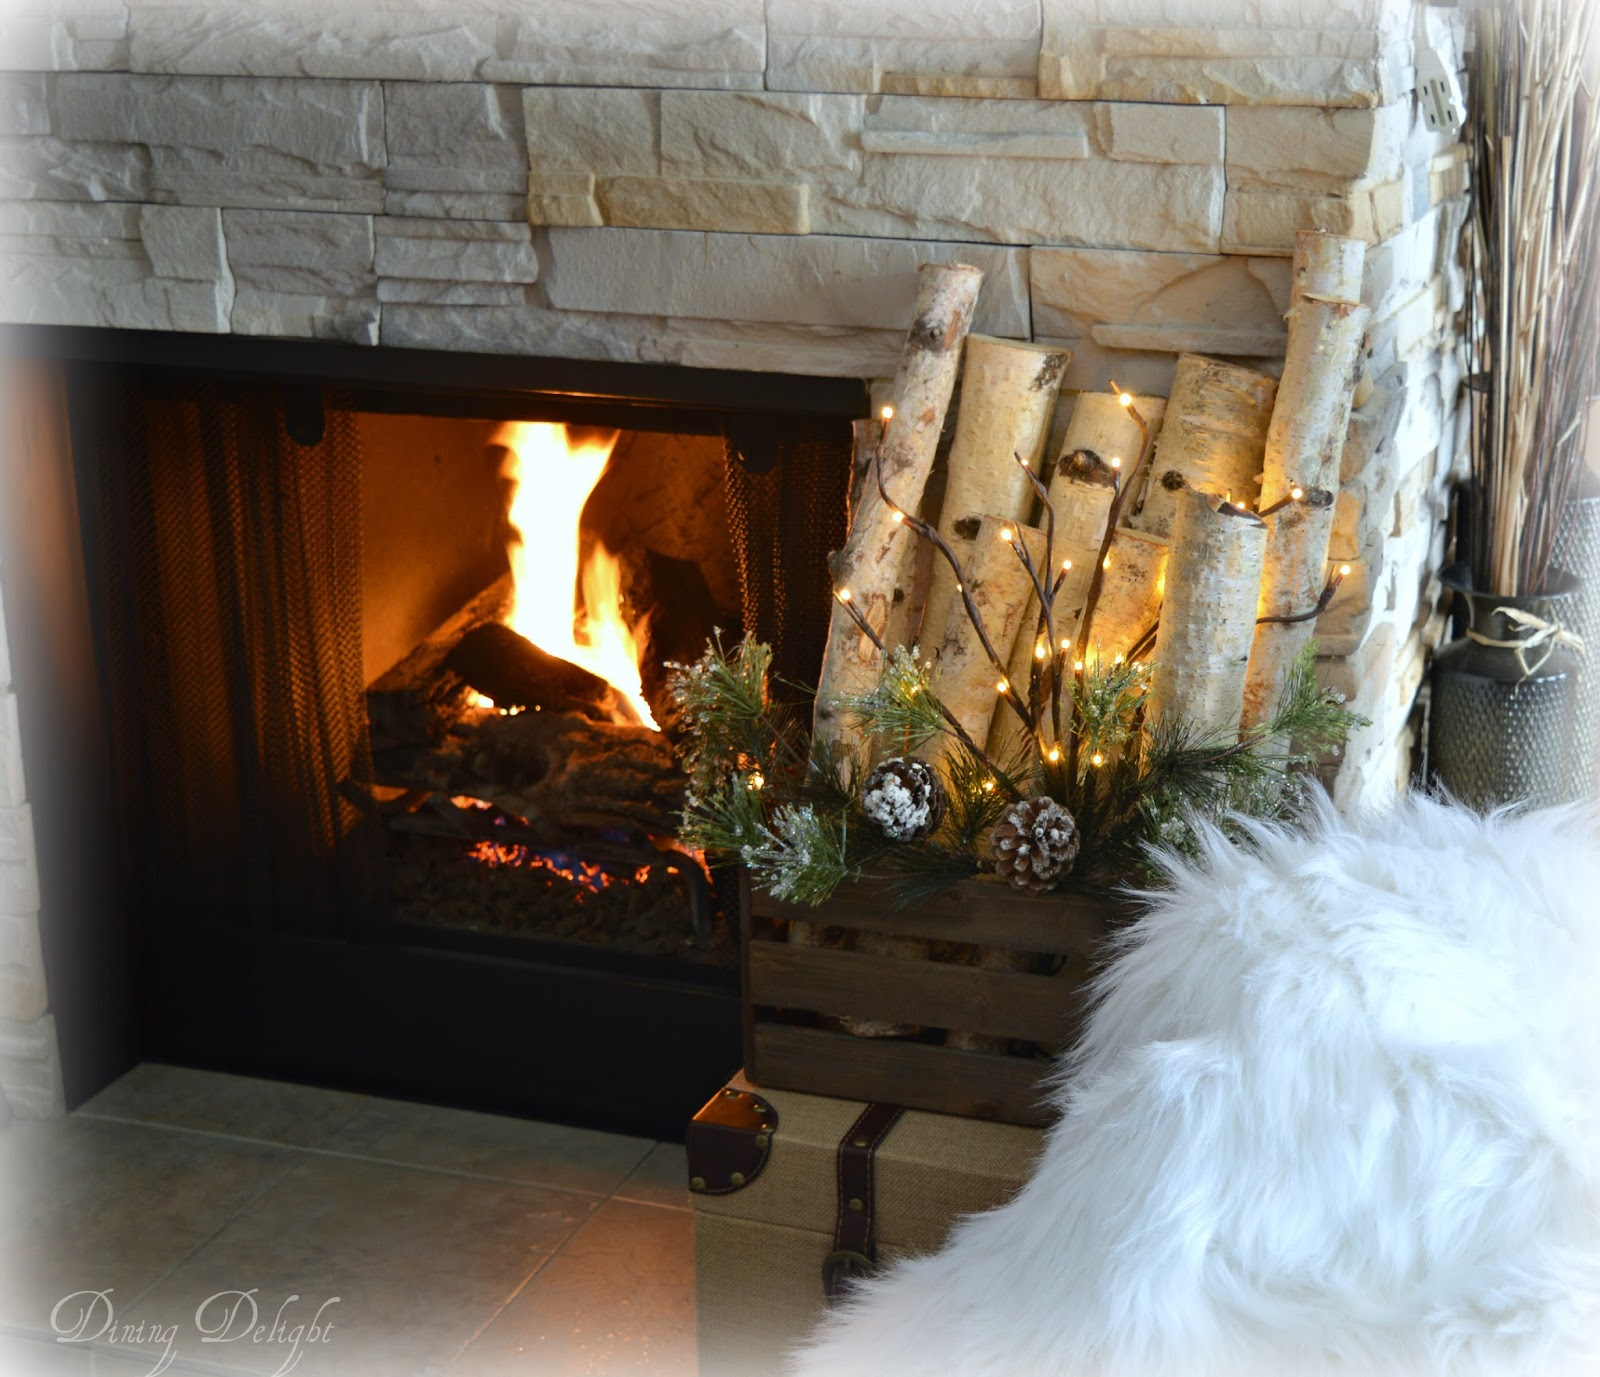 Dining Delight Ski Themed Winter Mantel